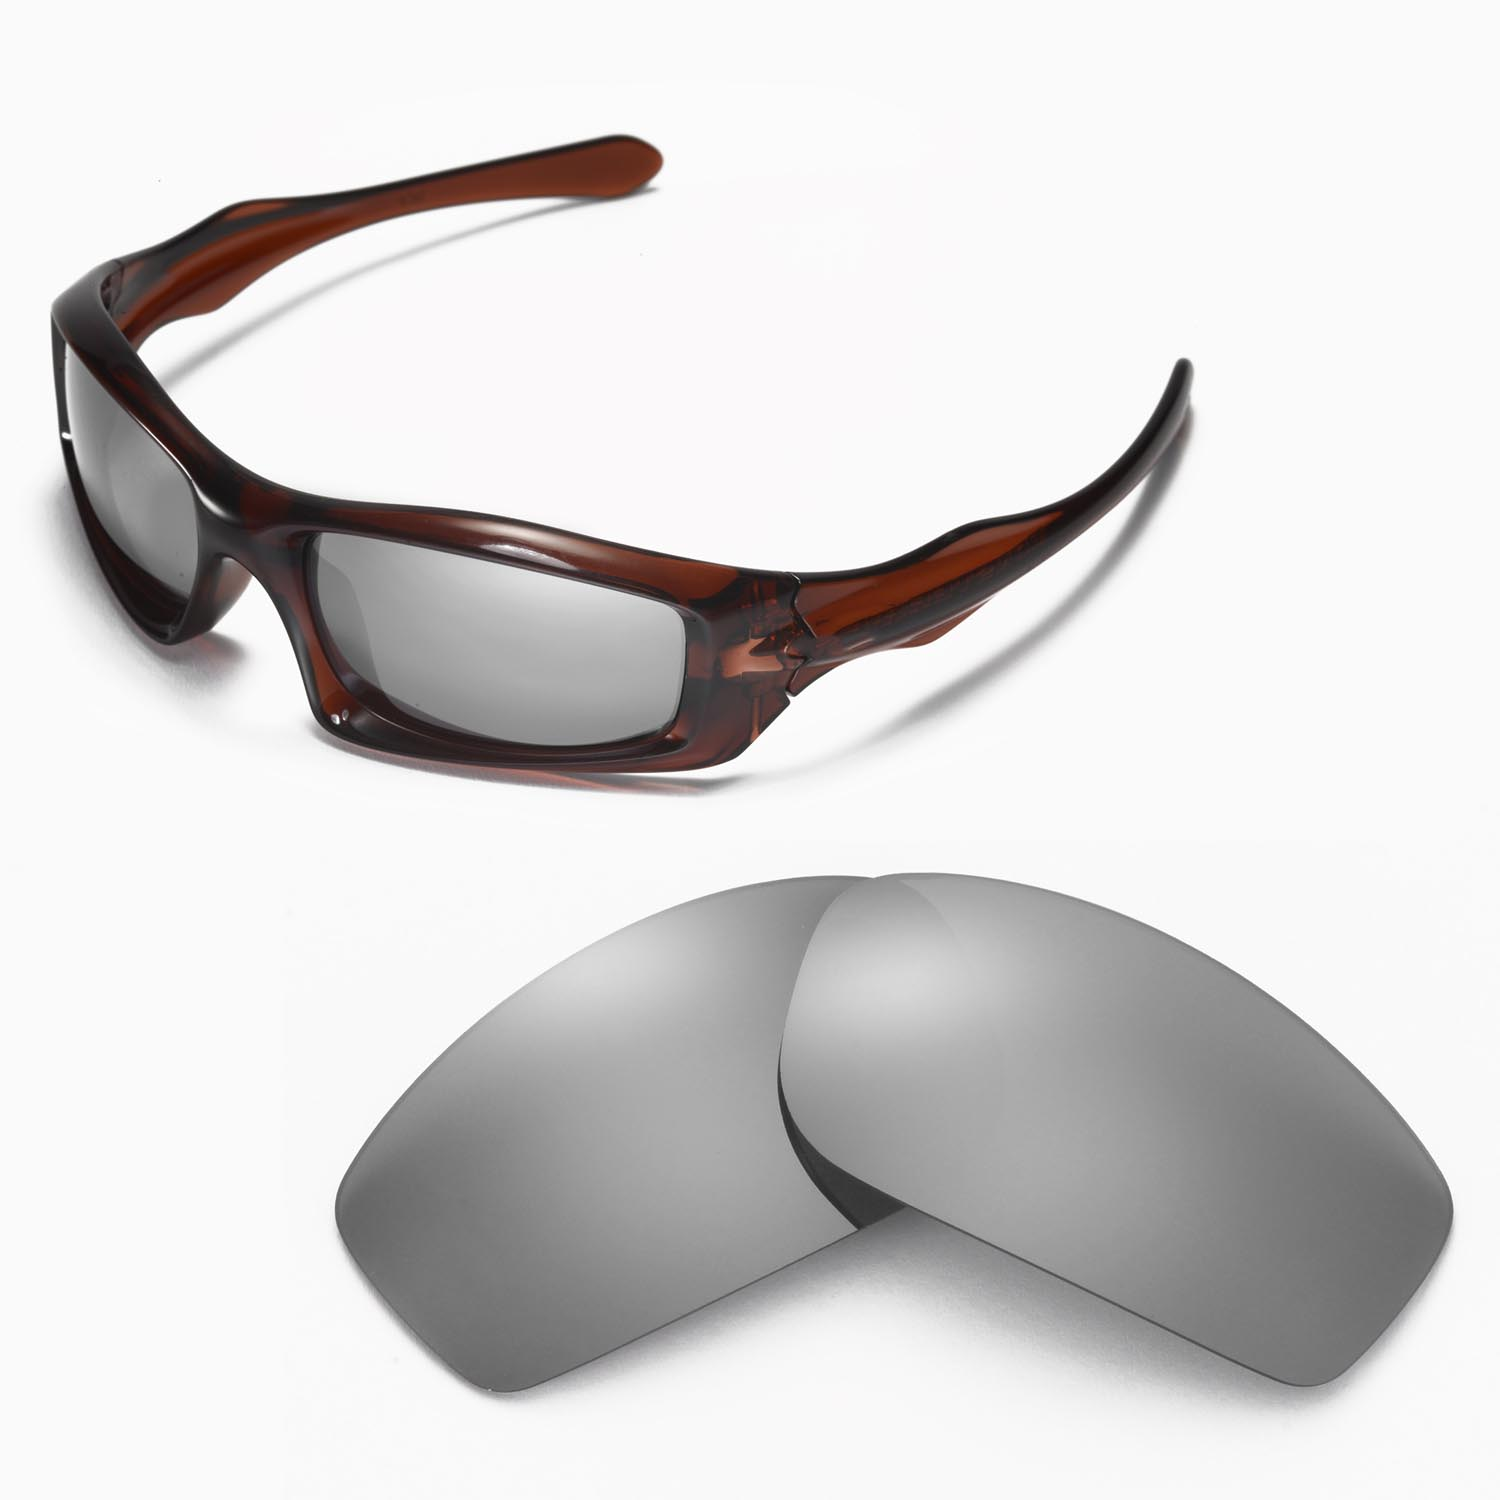 47db70b9c1 Details about New Walleva Polarized Titanium Lenses For Oakley Monster Pup